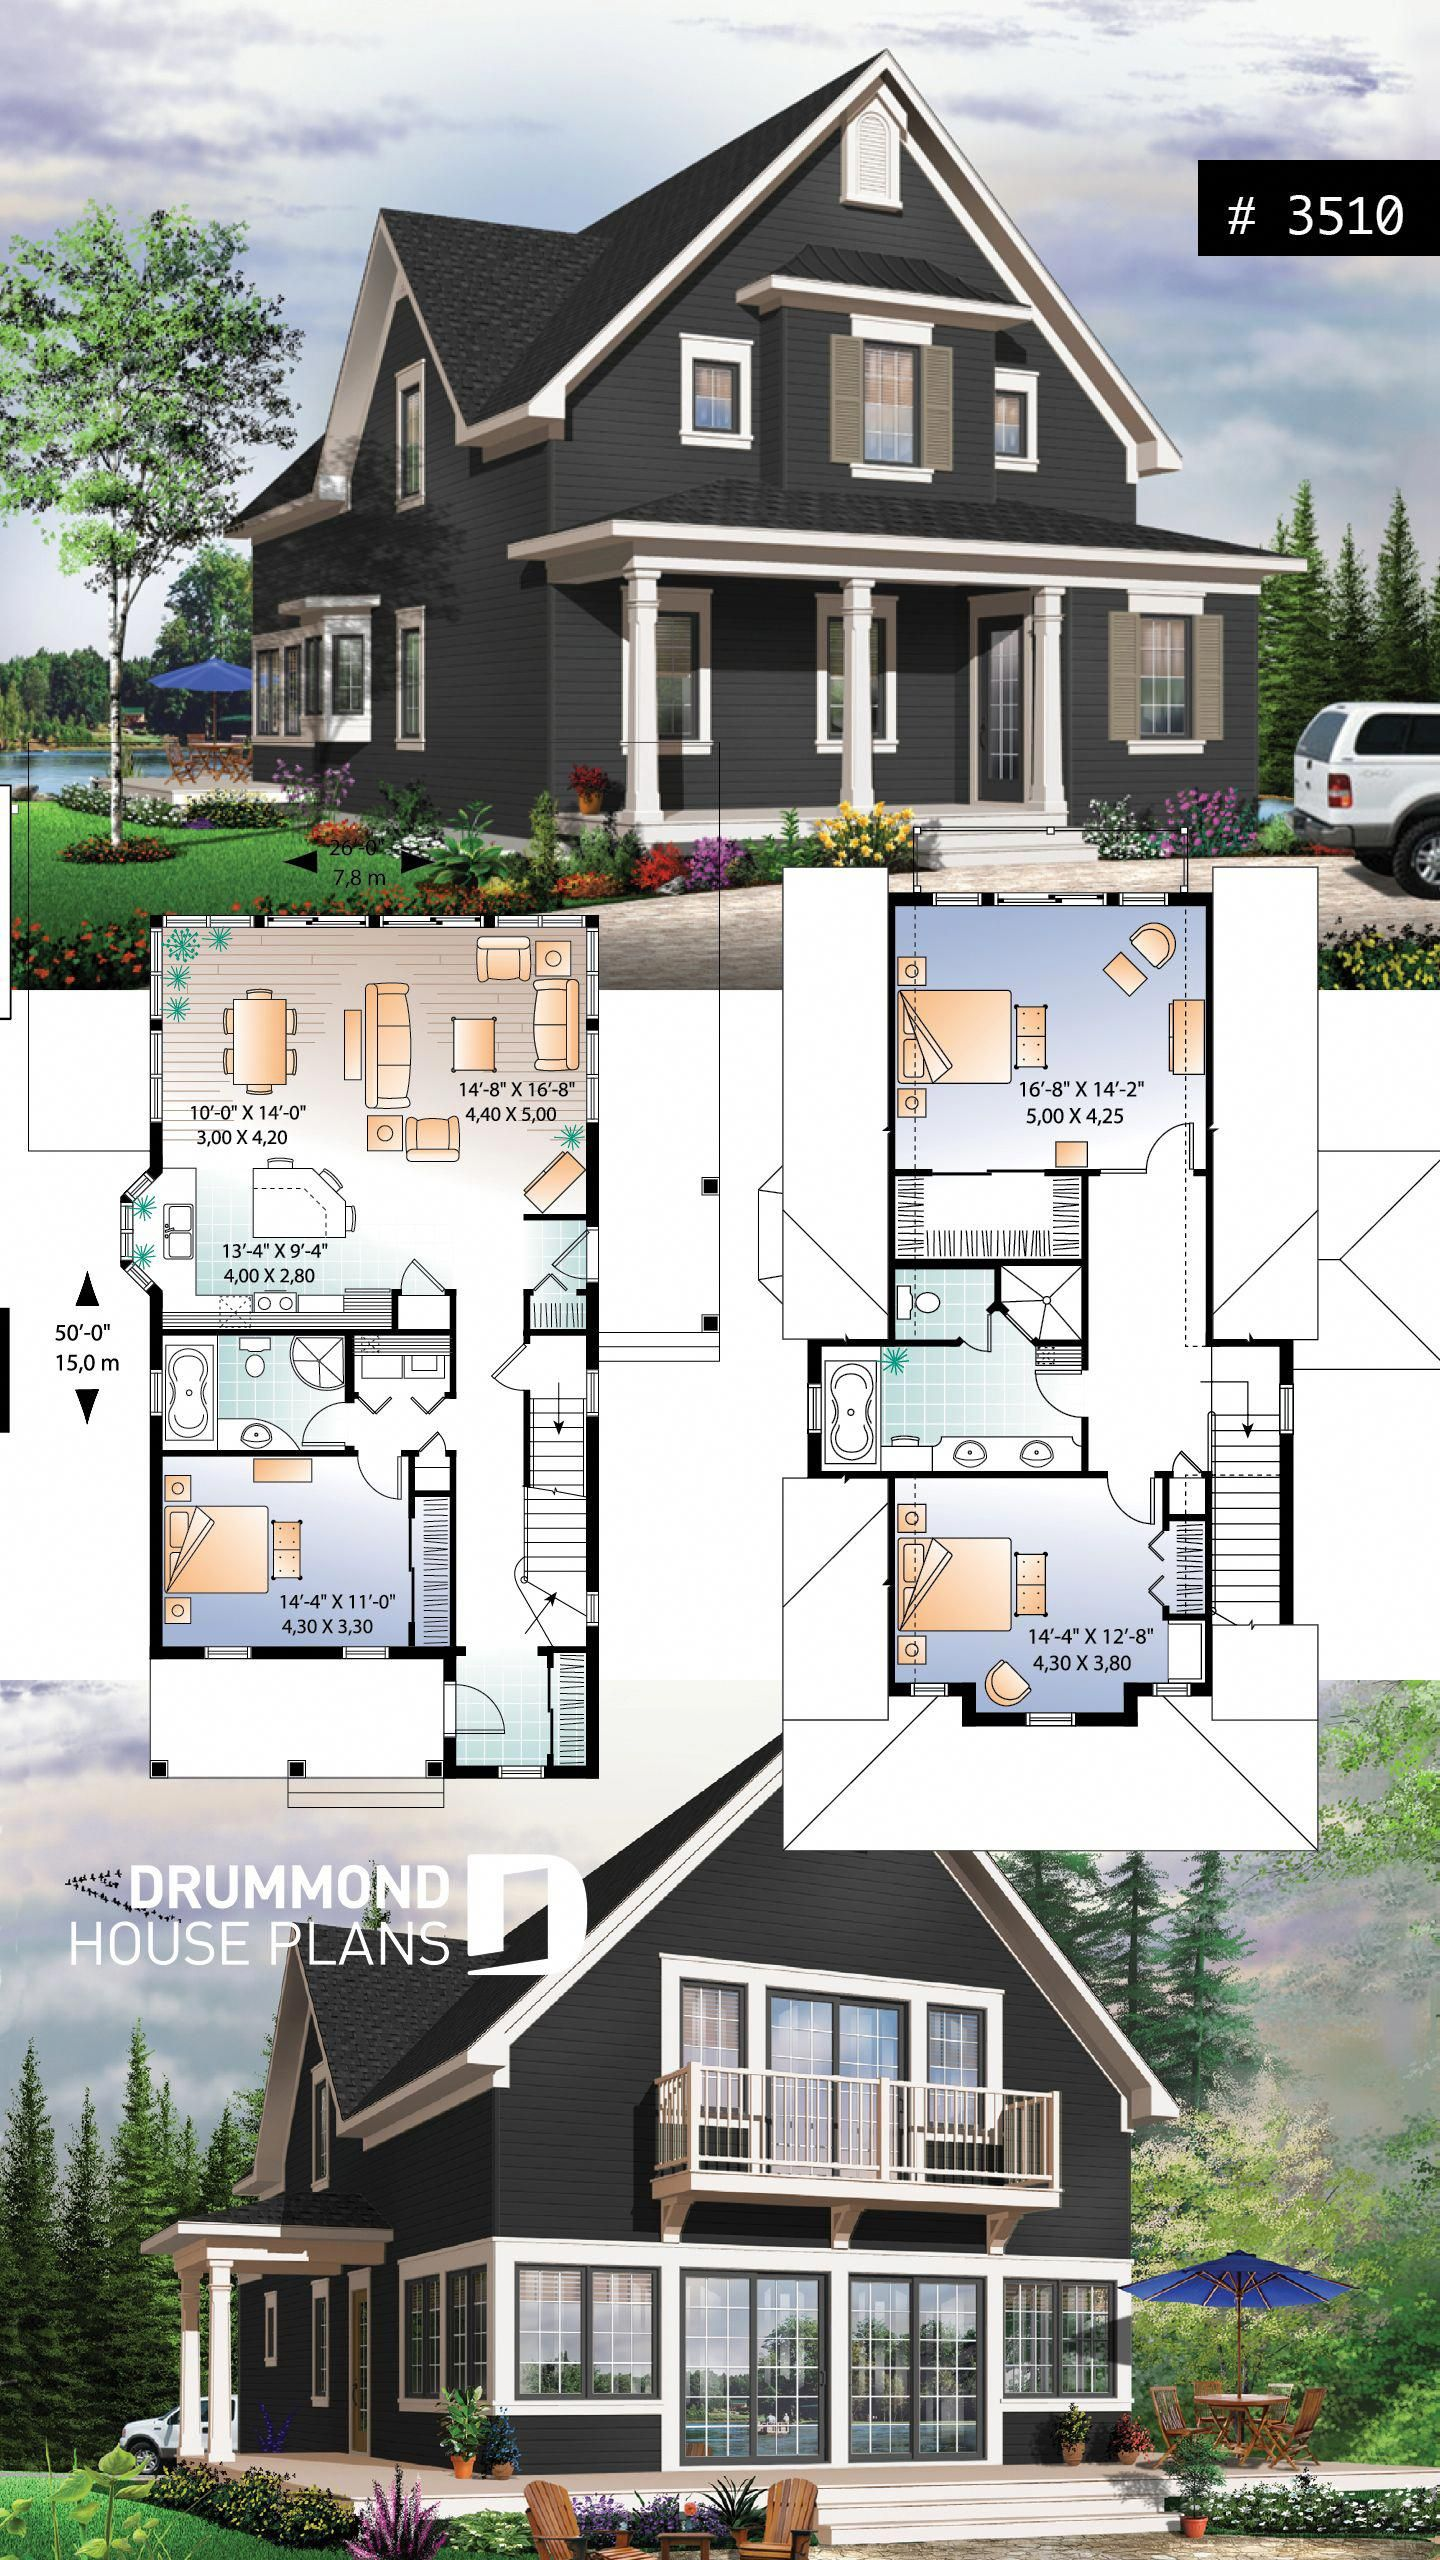 Scandinavian Style Country Cottage Plan Master On Main Open Floor Plan Panoramic View Large Country Cottage House Plans Sims House Plans Beach House Plans